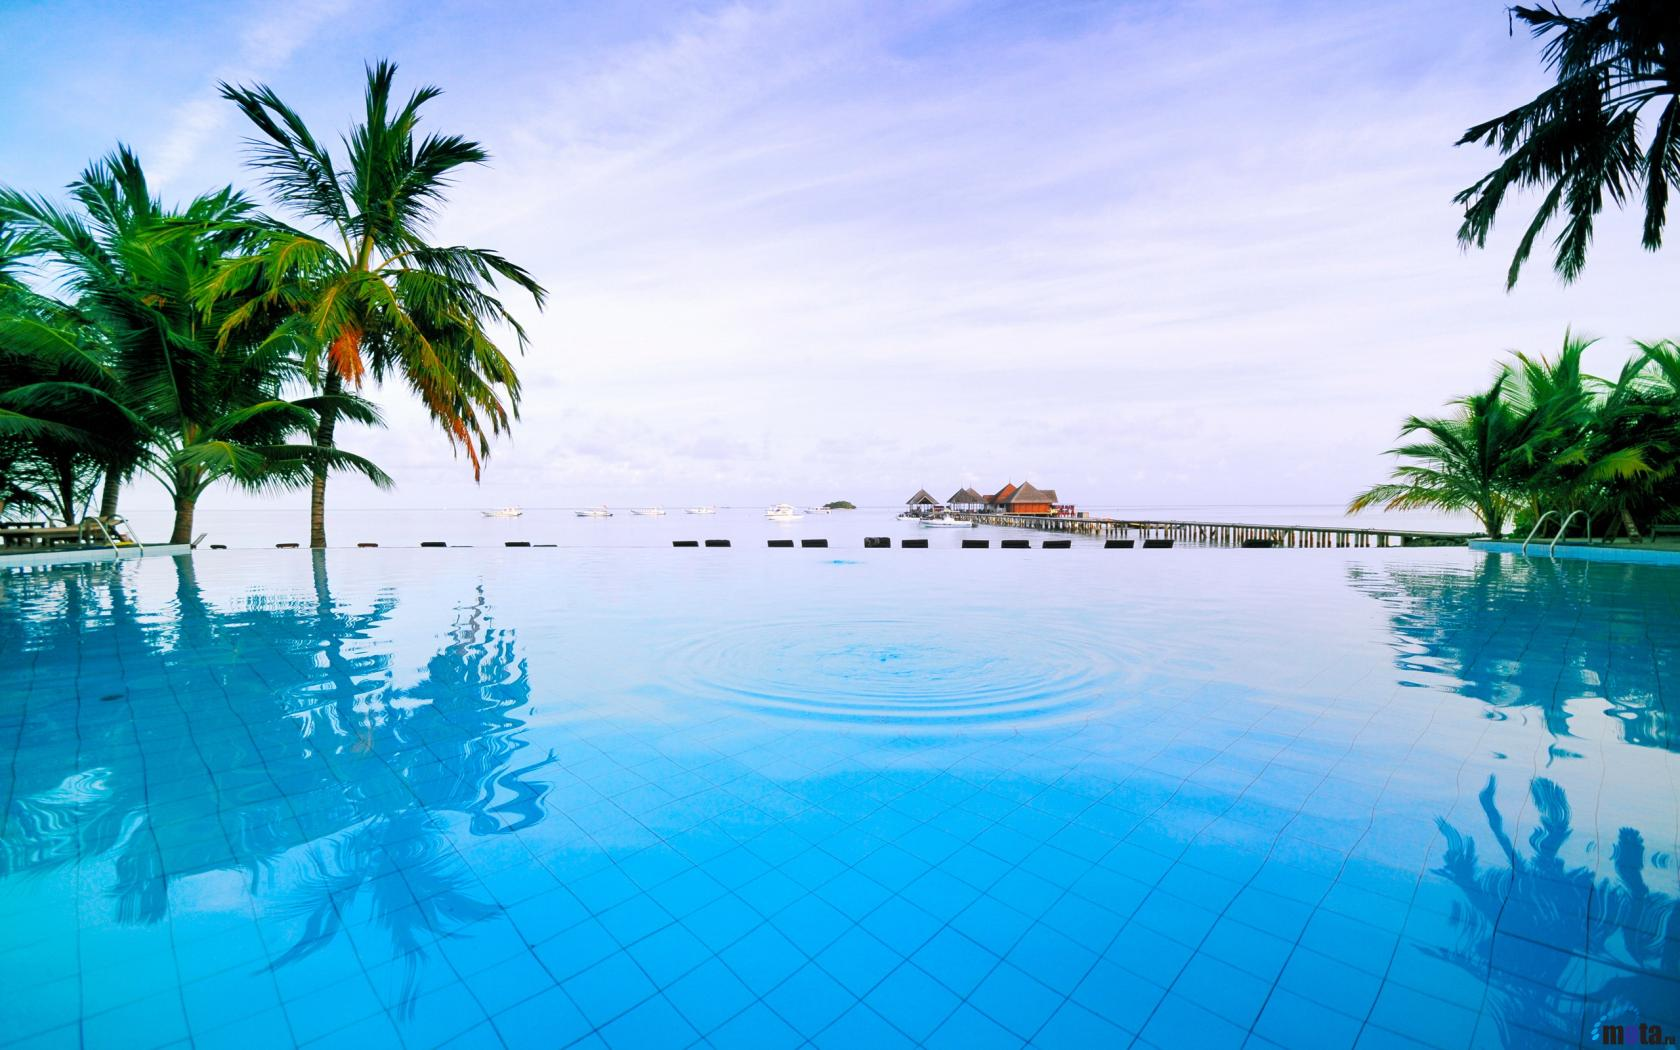 Download Wallpaper Swimming pool in Maldives hotel 1680 x 1050 1680x1050